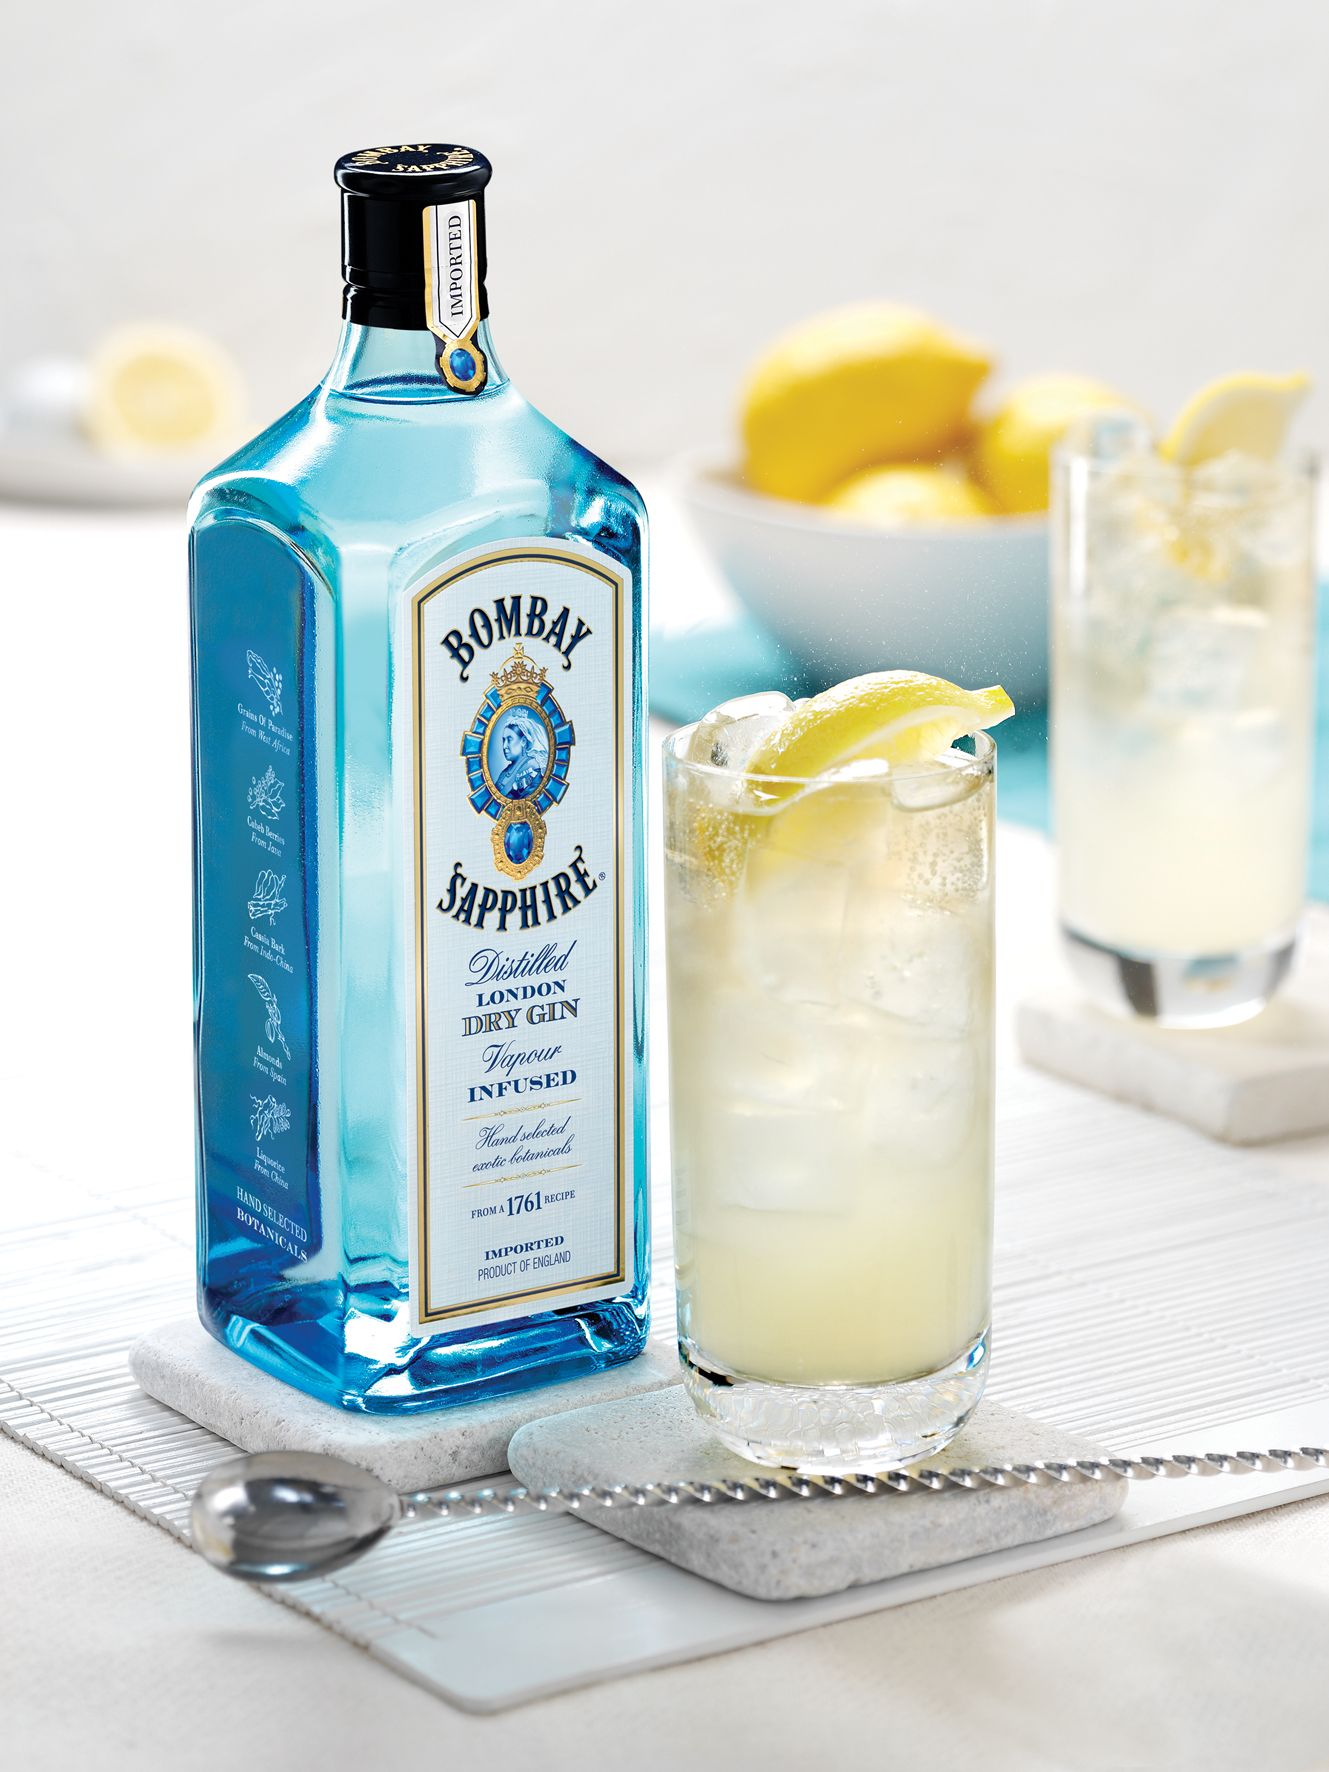 Bombay Sapphire Collins Dry Gin London Dry Gin Vodka Bottle